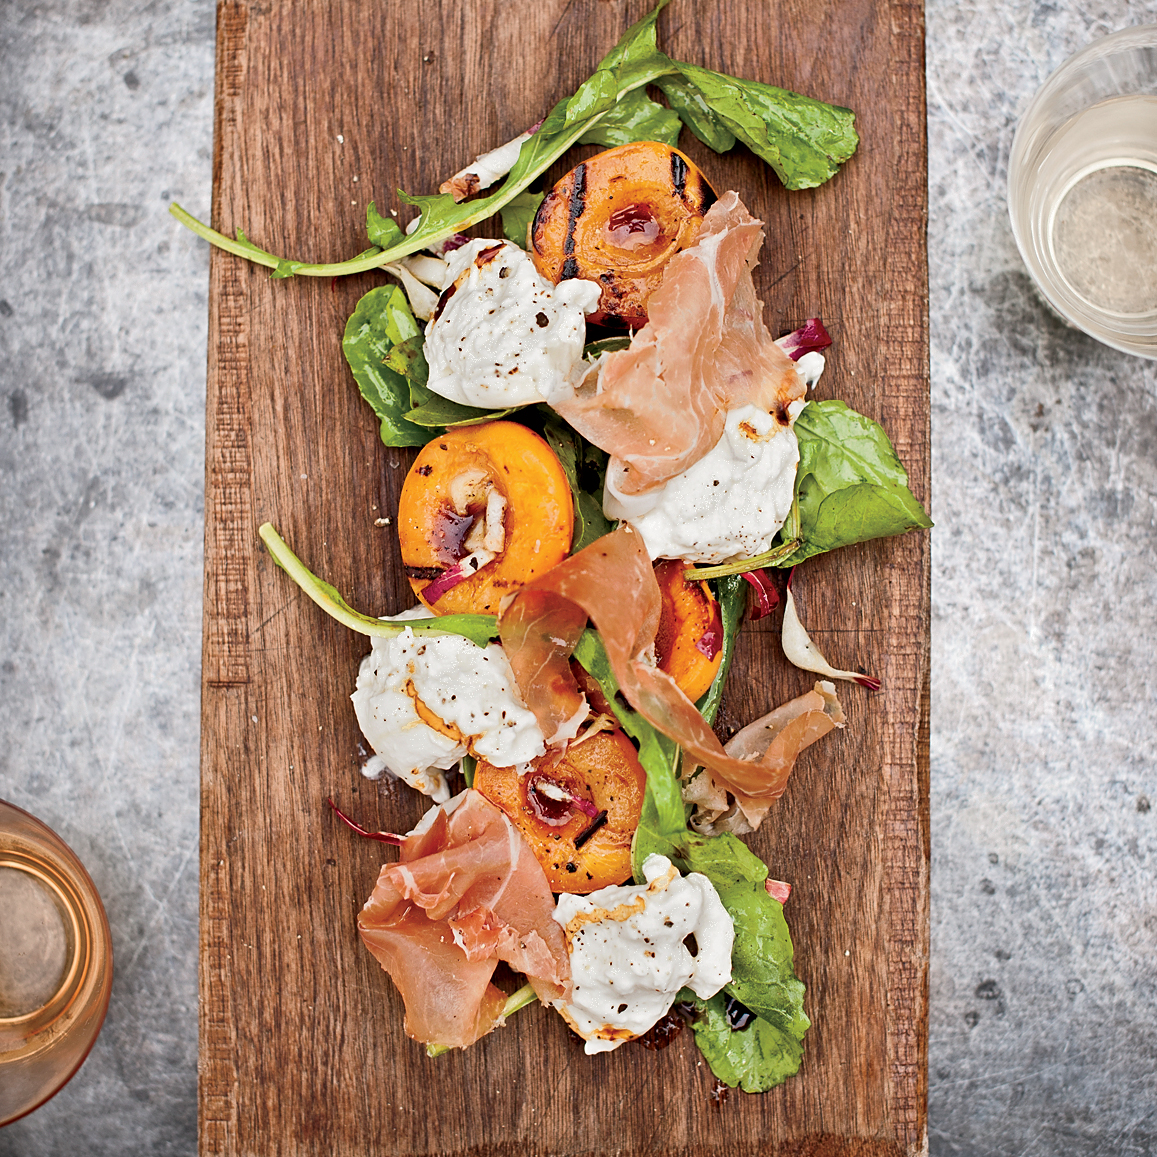 201109-xl-grilled-apricots-with-burrata-country-ham-and-arugula.jpg